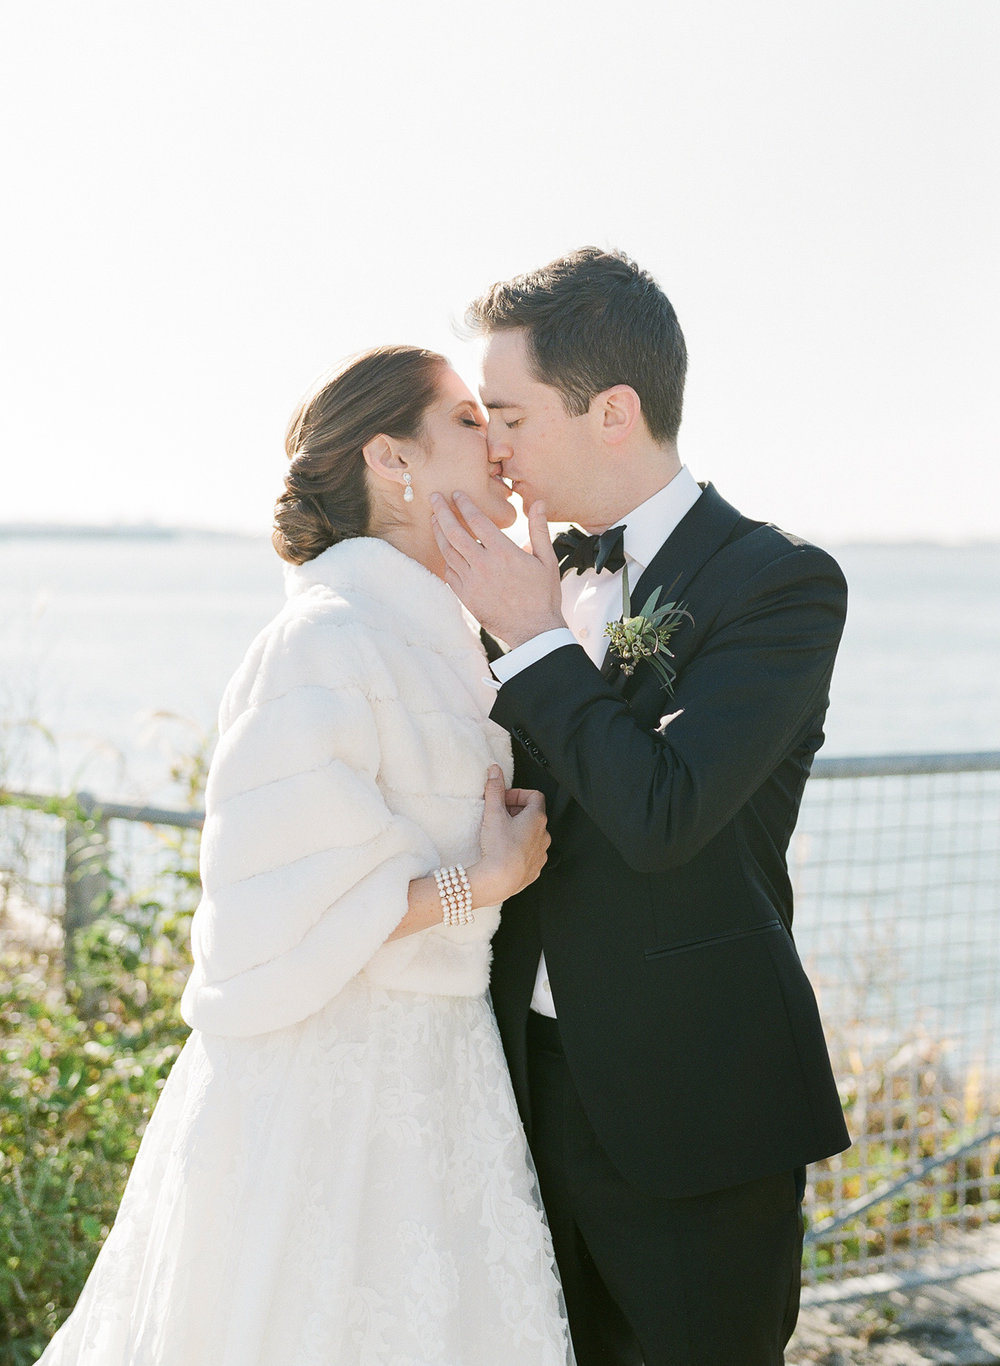 Brooklyn Bride and Groom Portraits